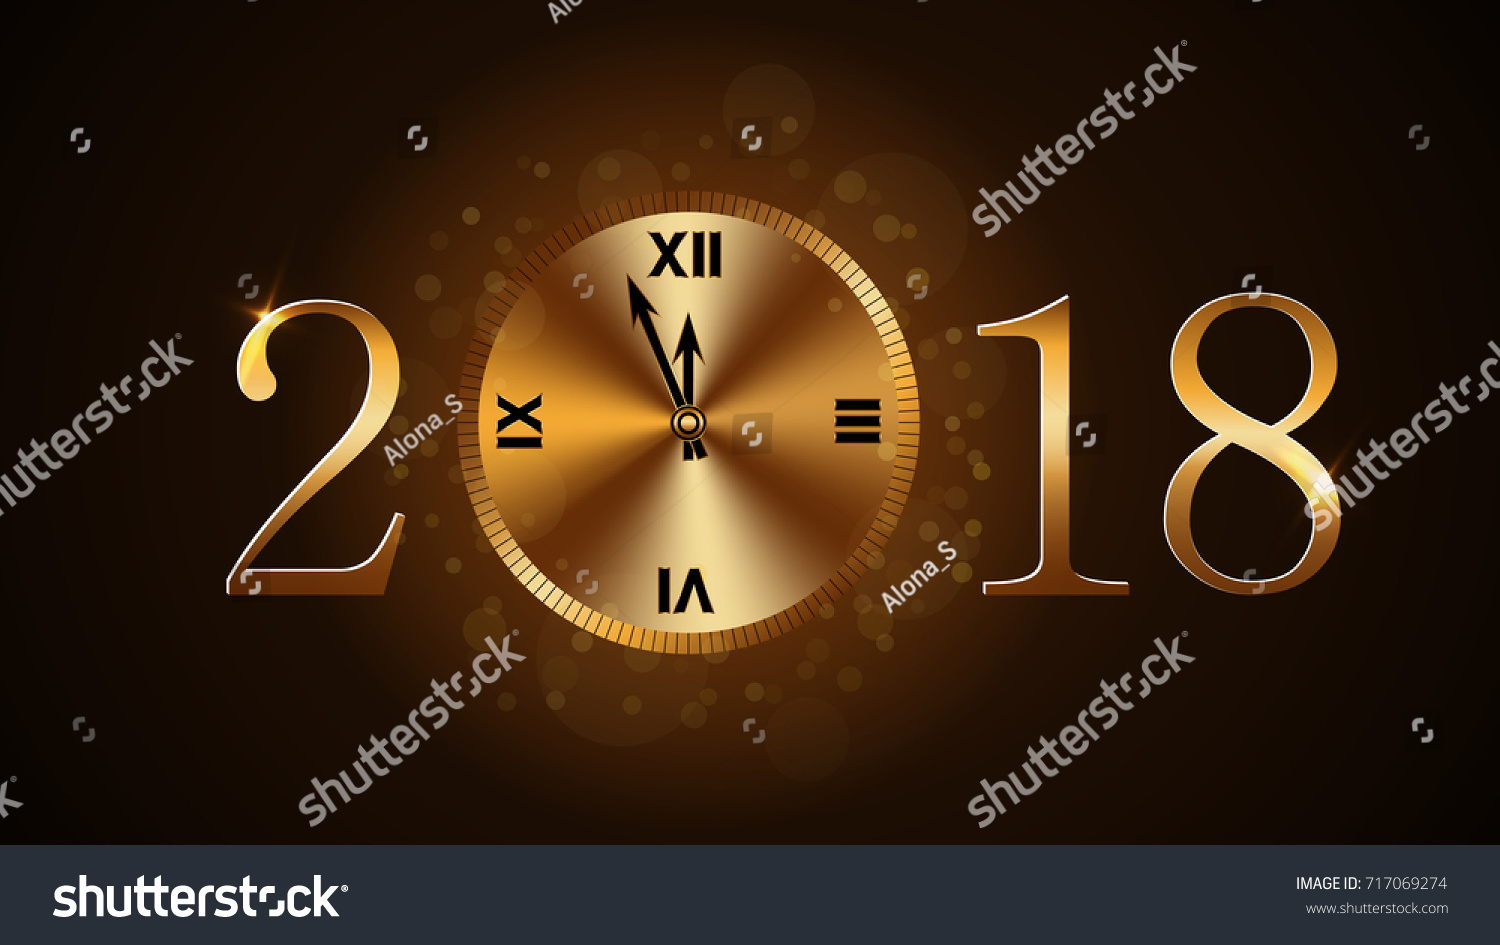 happy new year card background magic gold clock countdown golden numbers 2018 christmas